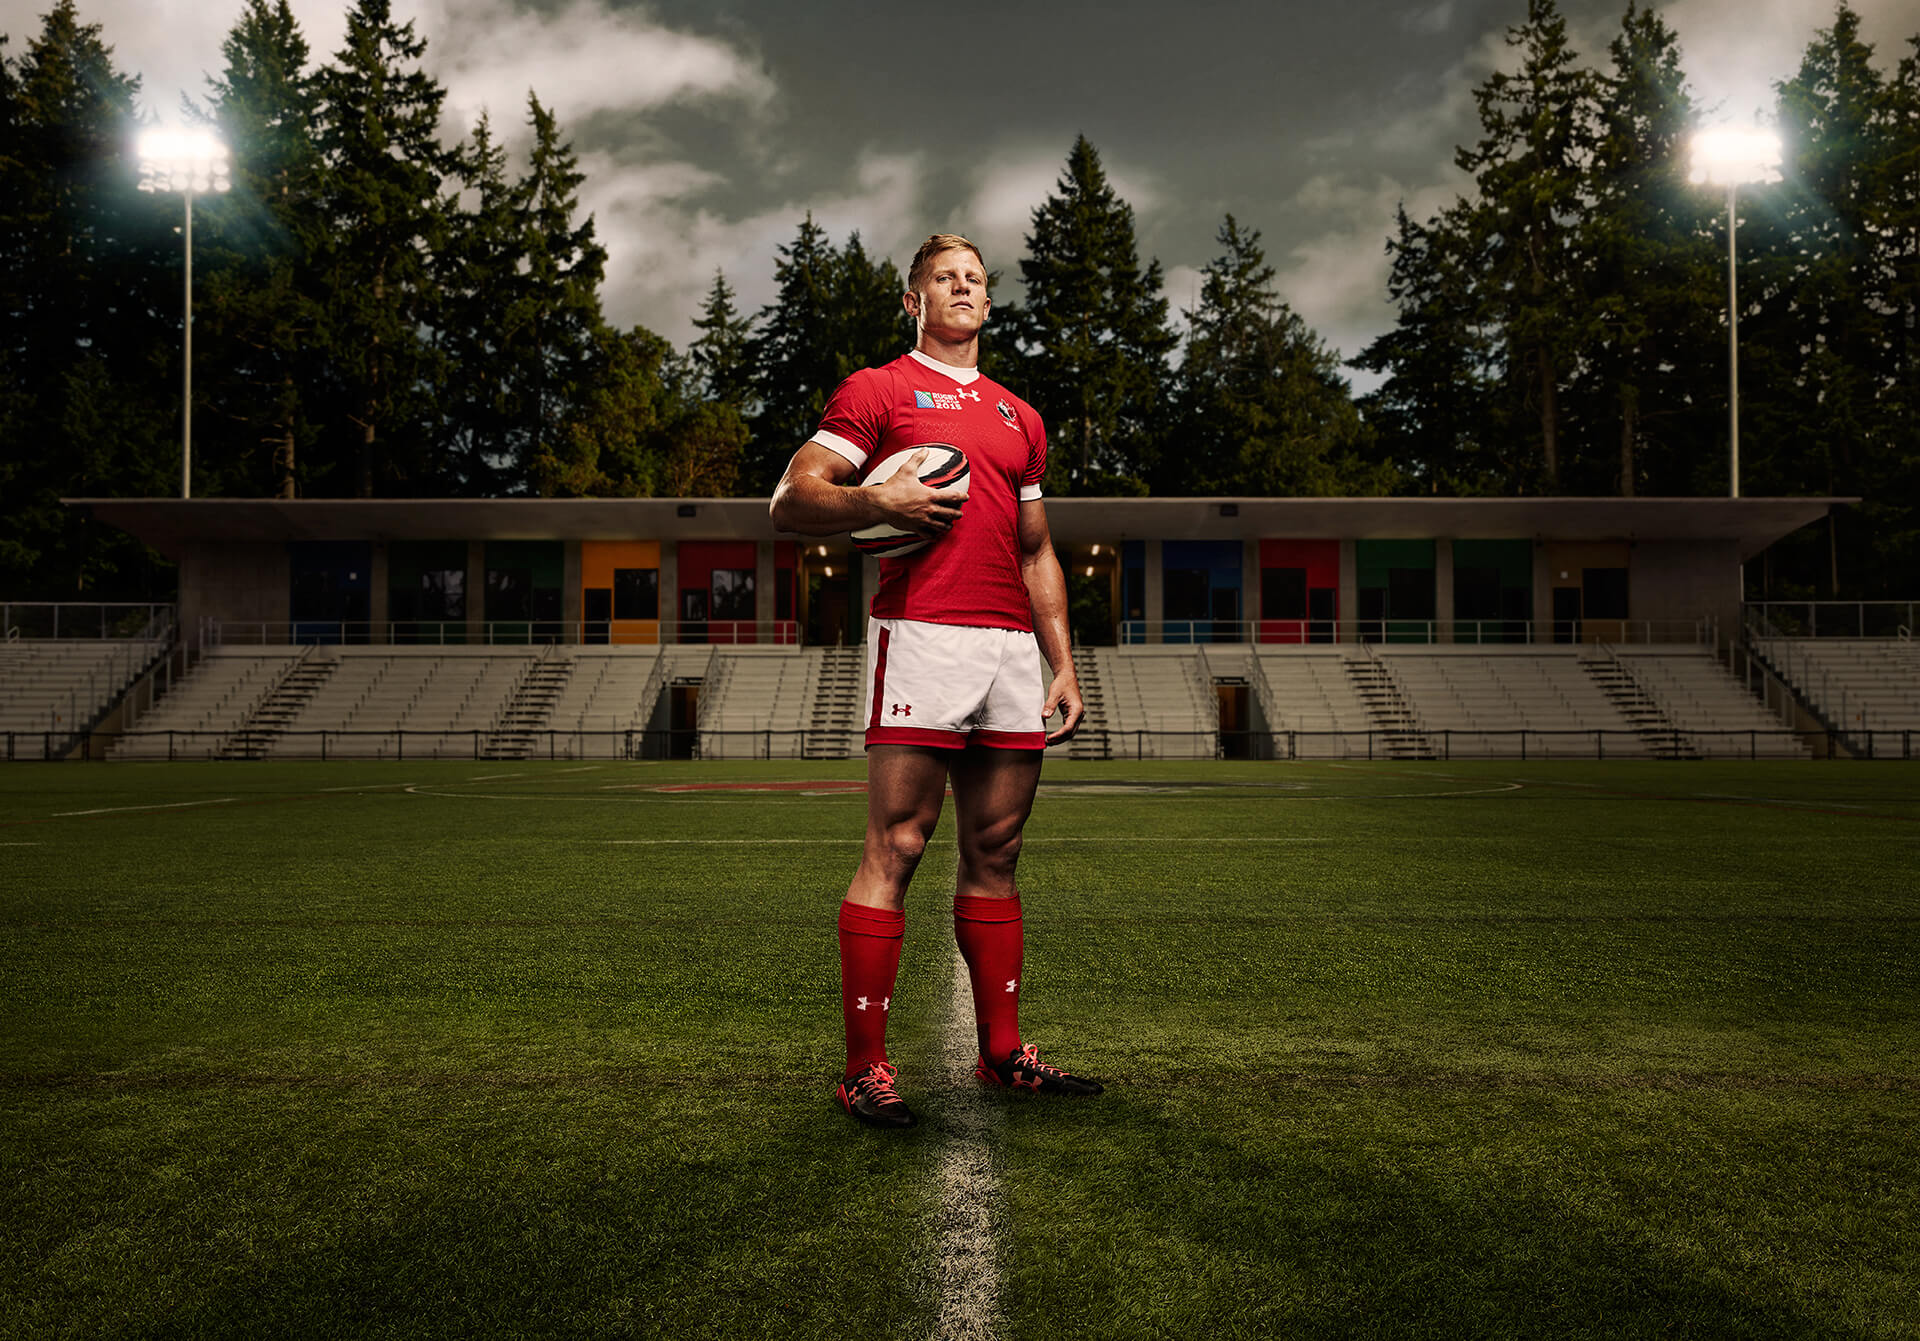 Unified Content, Unified Content Toronto, Aaron Cobb, Under Armour, Rugby, Team Canada, Athlete, Sports Photography, Rugby Canada, Canadian Rugby, John Moonlight,